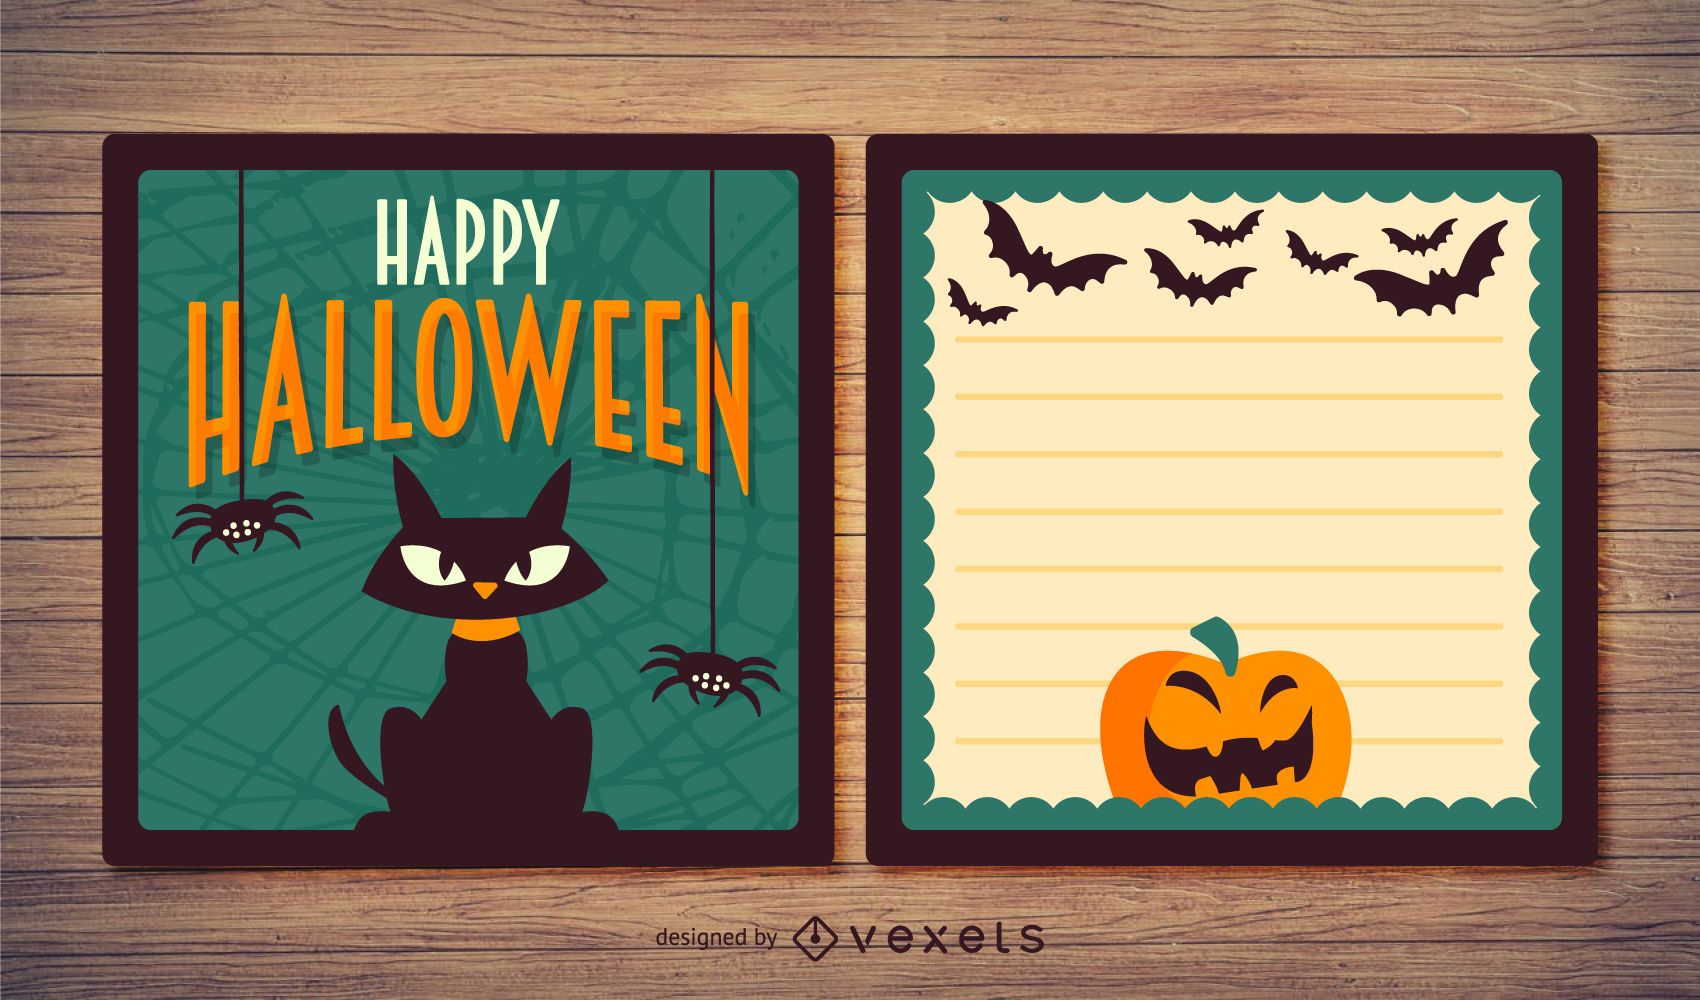 Spooky Halloween card with cats and pumpkins